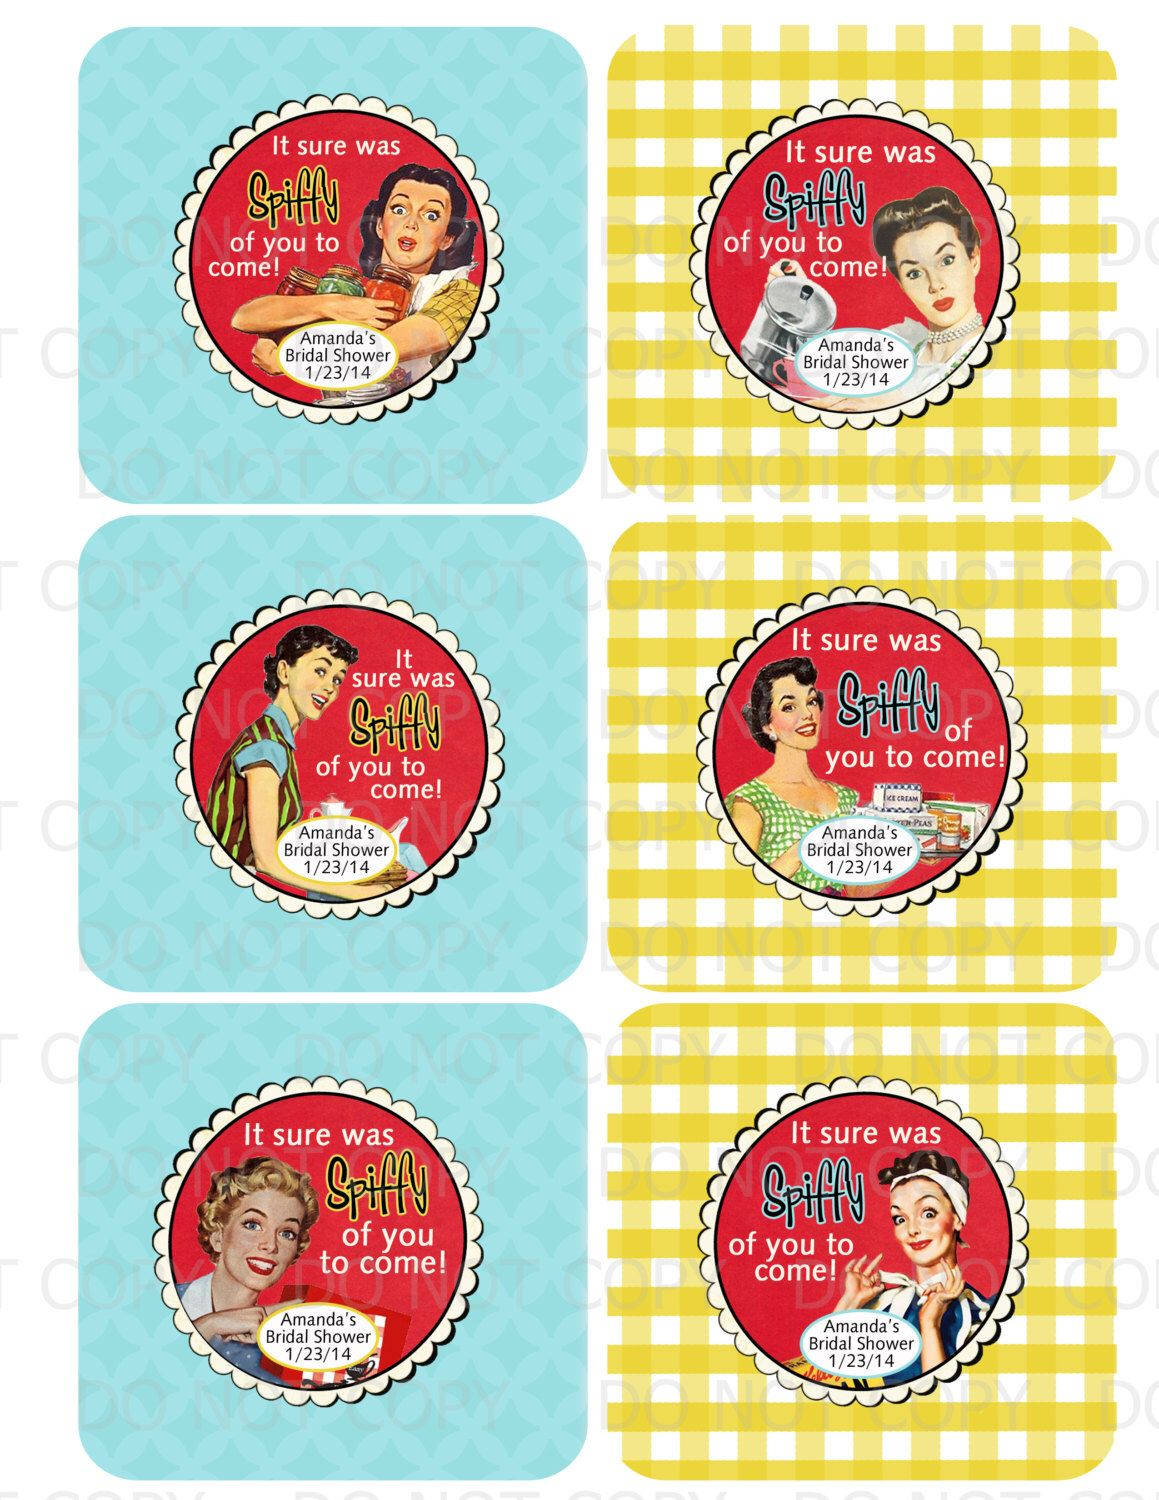 printable personalized retro housewife bridal shower thank you tags labels by onelovedesignsllc on etsy https